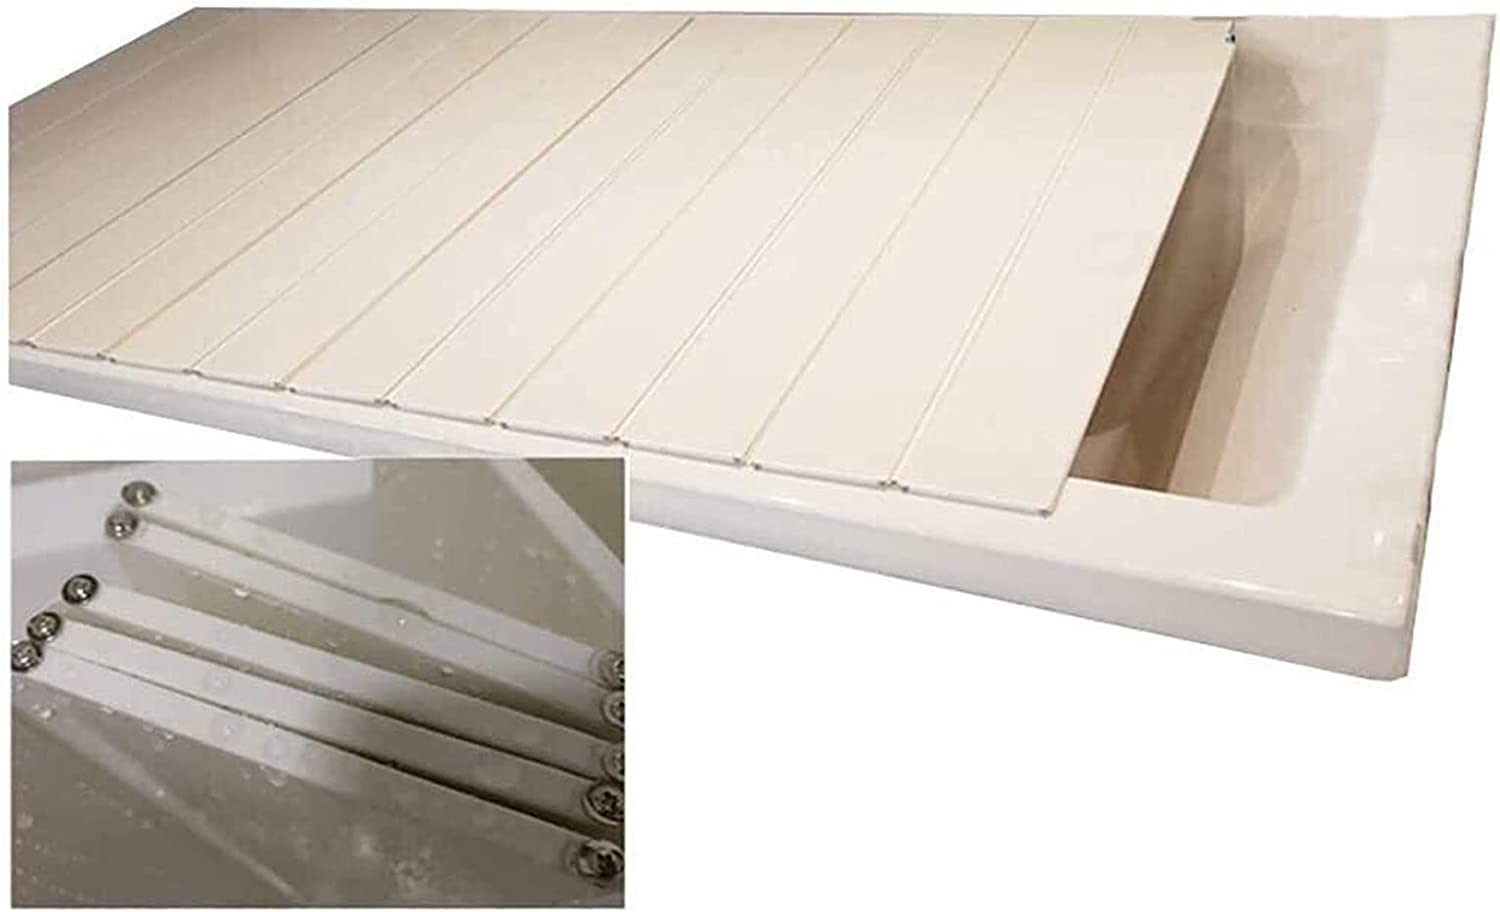 ACCDUER Bathtub Accessories Cover Anti-dust Board Manufacturer OFFicial shop Direct sale of manufacturer Dust B